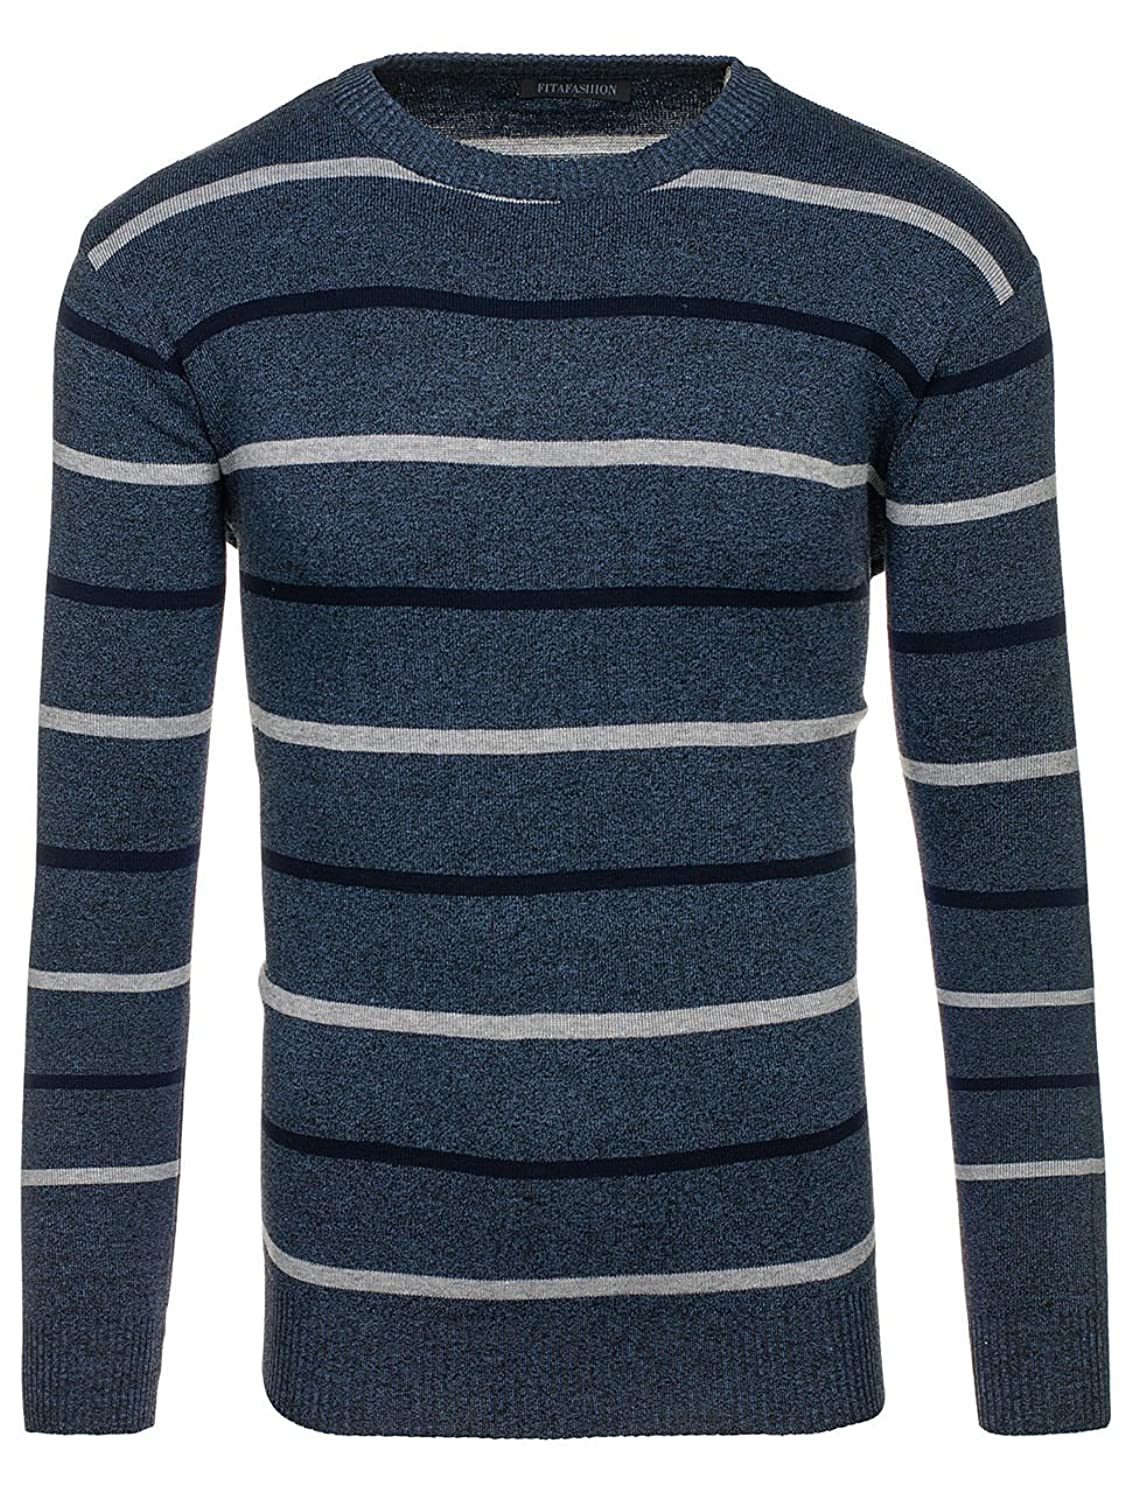 BOLF Men's Striped Jumper Knitwear Ribbed Sweater Patterned Casual Fita  Fashion HG1722 Light Navy Blue L [5E5]: Amazon.co.uk: Clothing